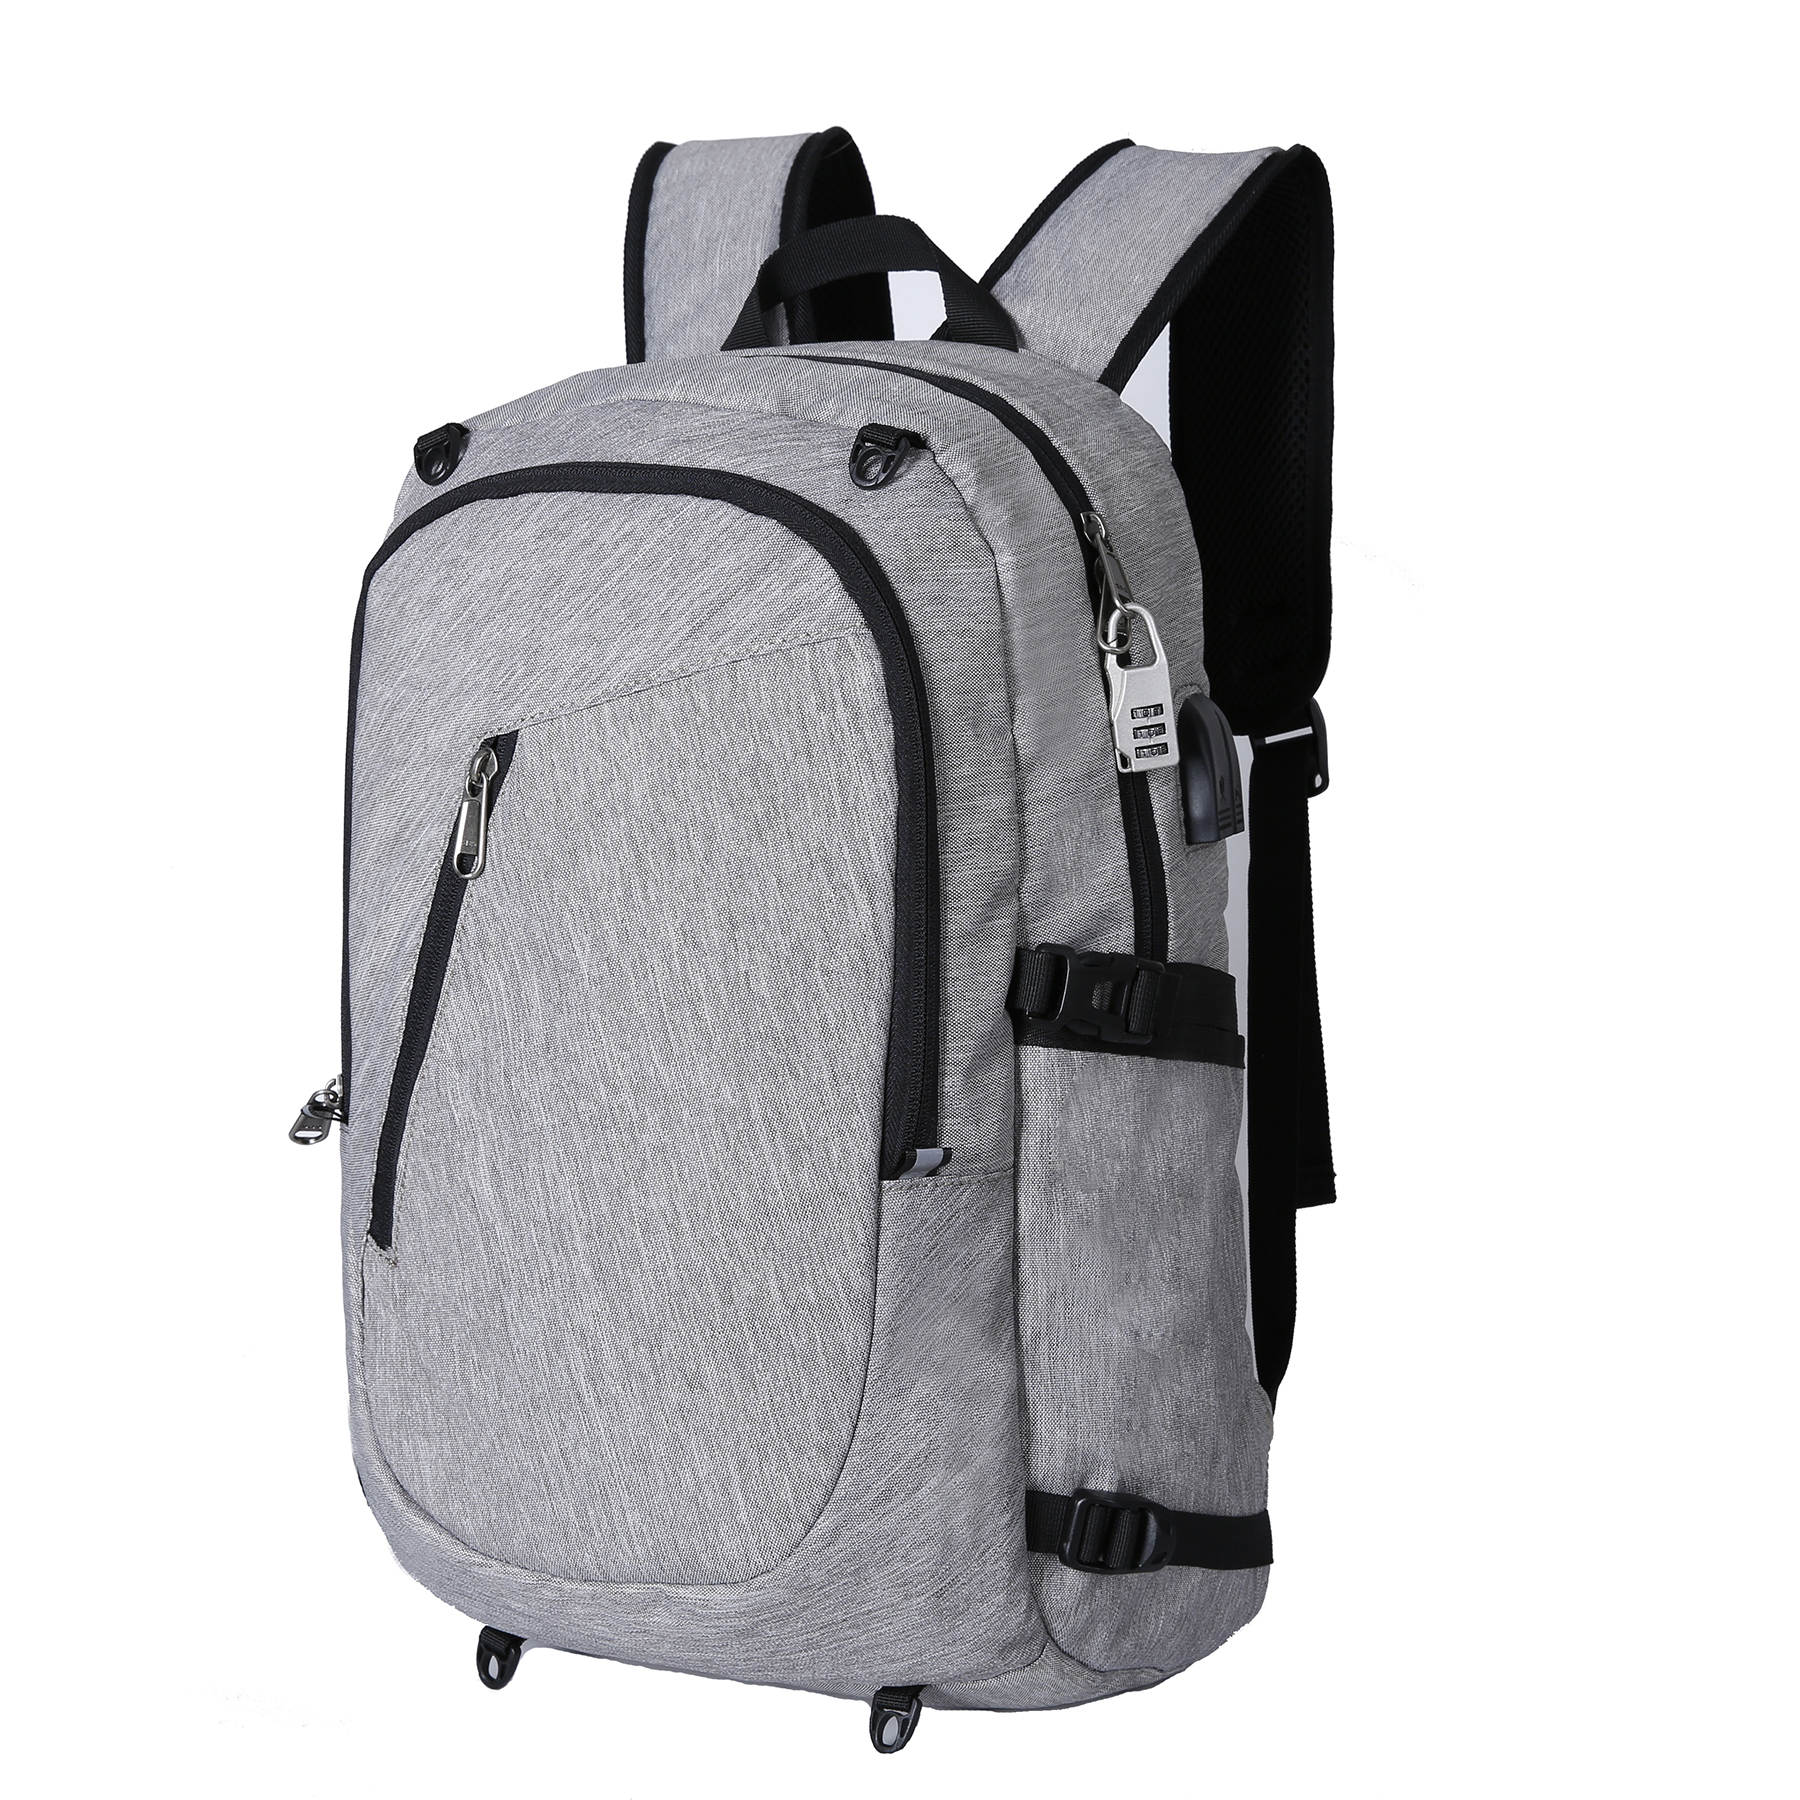 900d Polyester Travel Laptop Bags